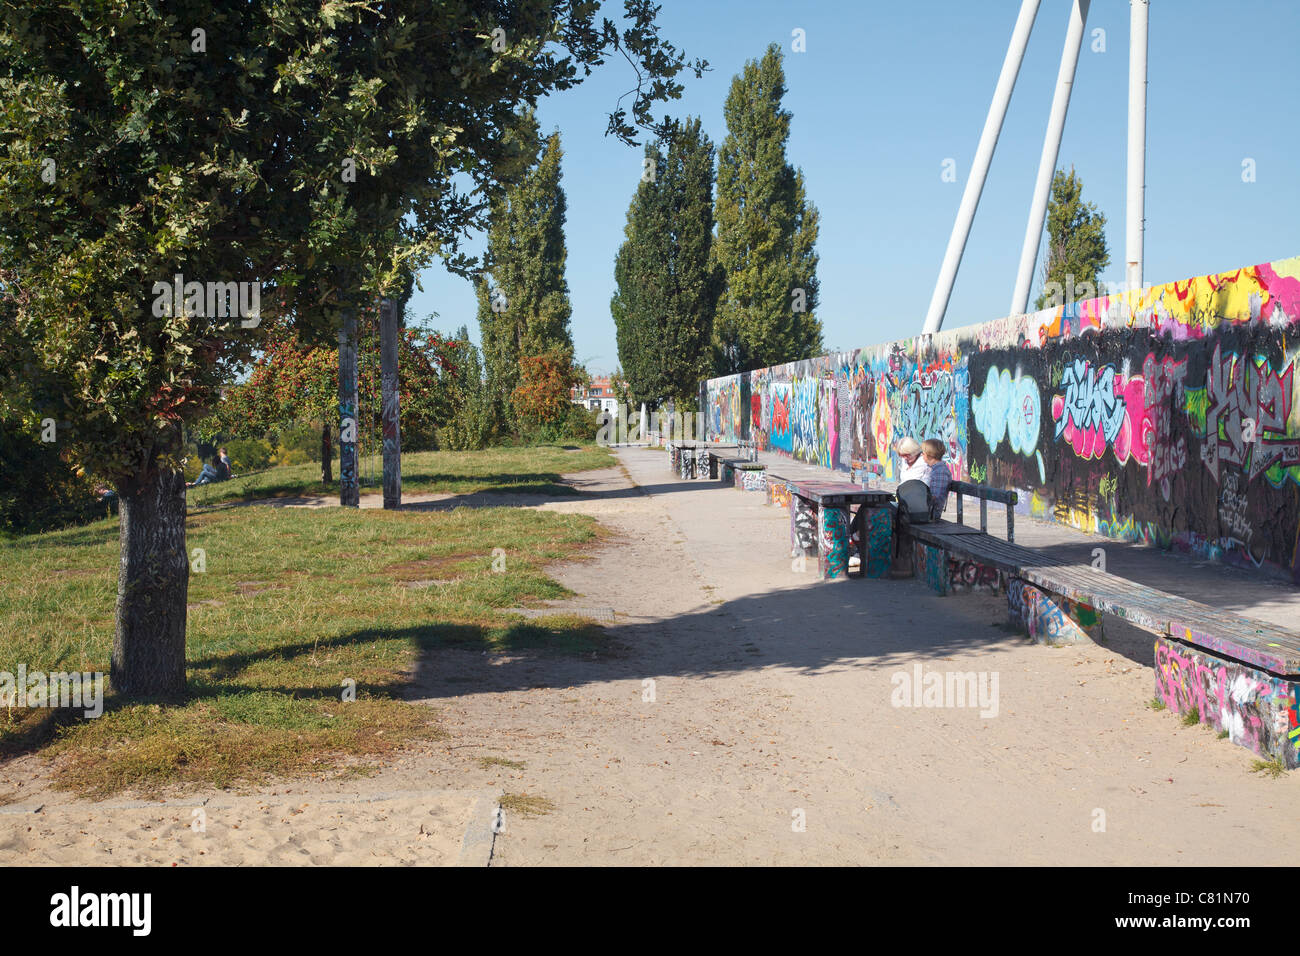 Mauer Park with section of Berlin Wall, Berlin, Germany - Stock Image